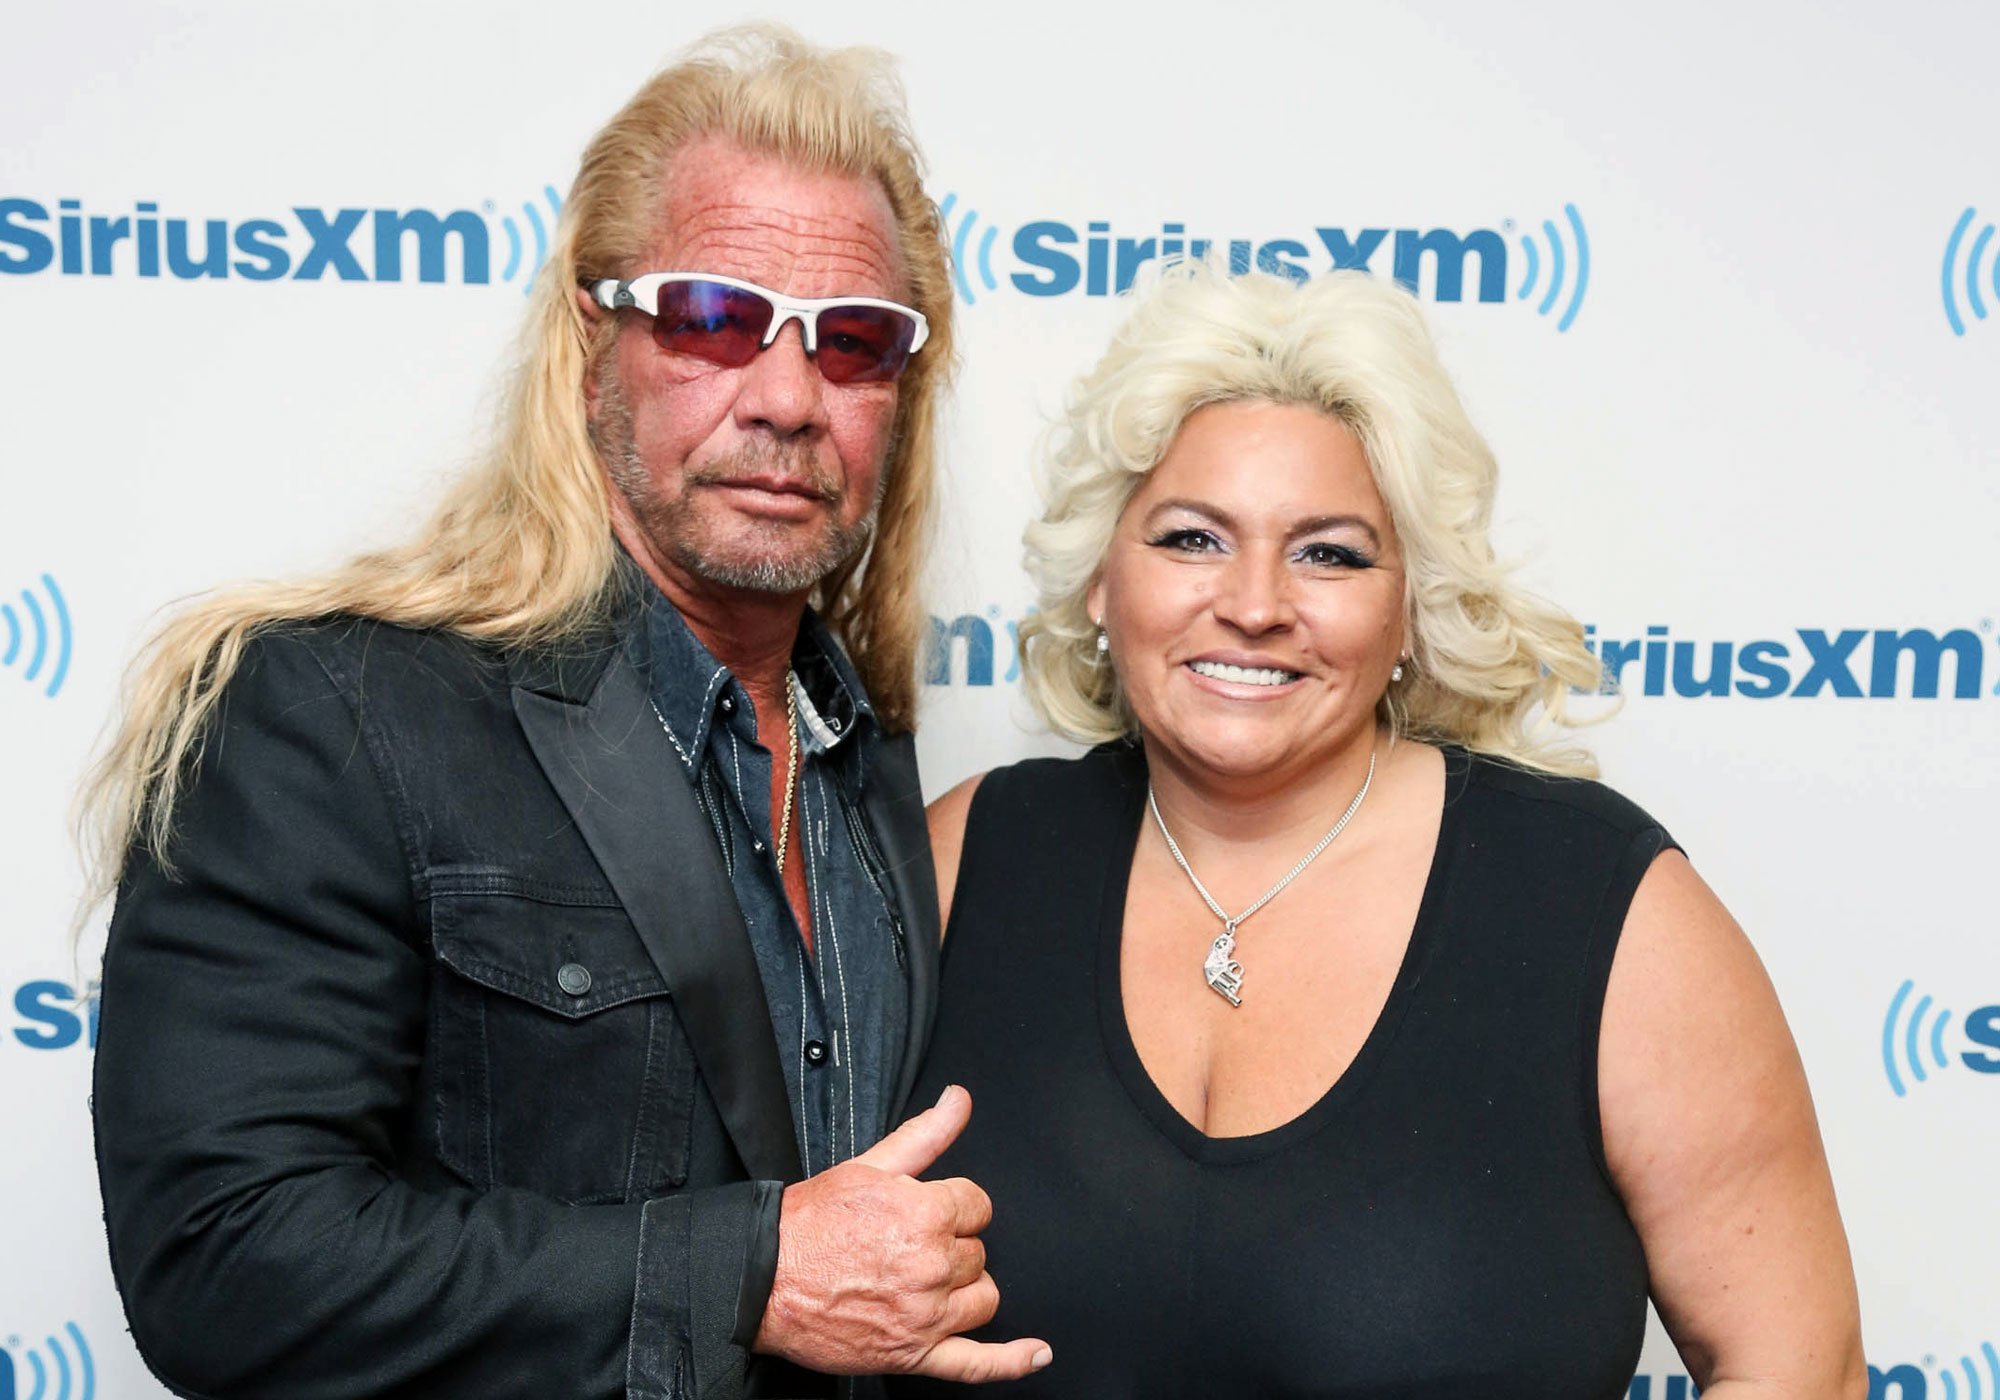 Duane 'Dog the Bounty Hunter' Chapman Shares Photo of Wife Beth Chapman in Her Hospital Bed Amid Coma